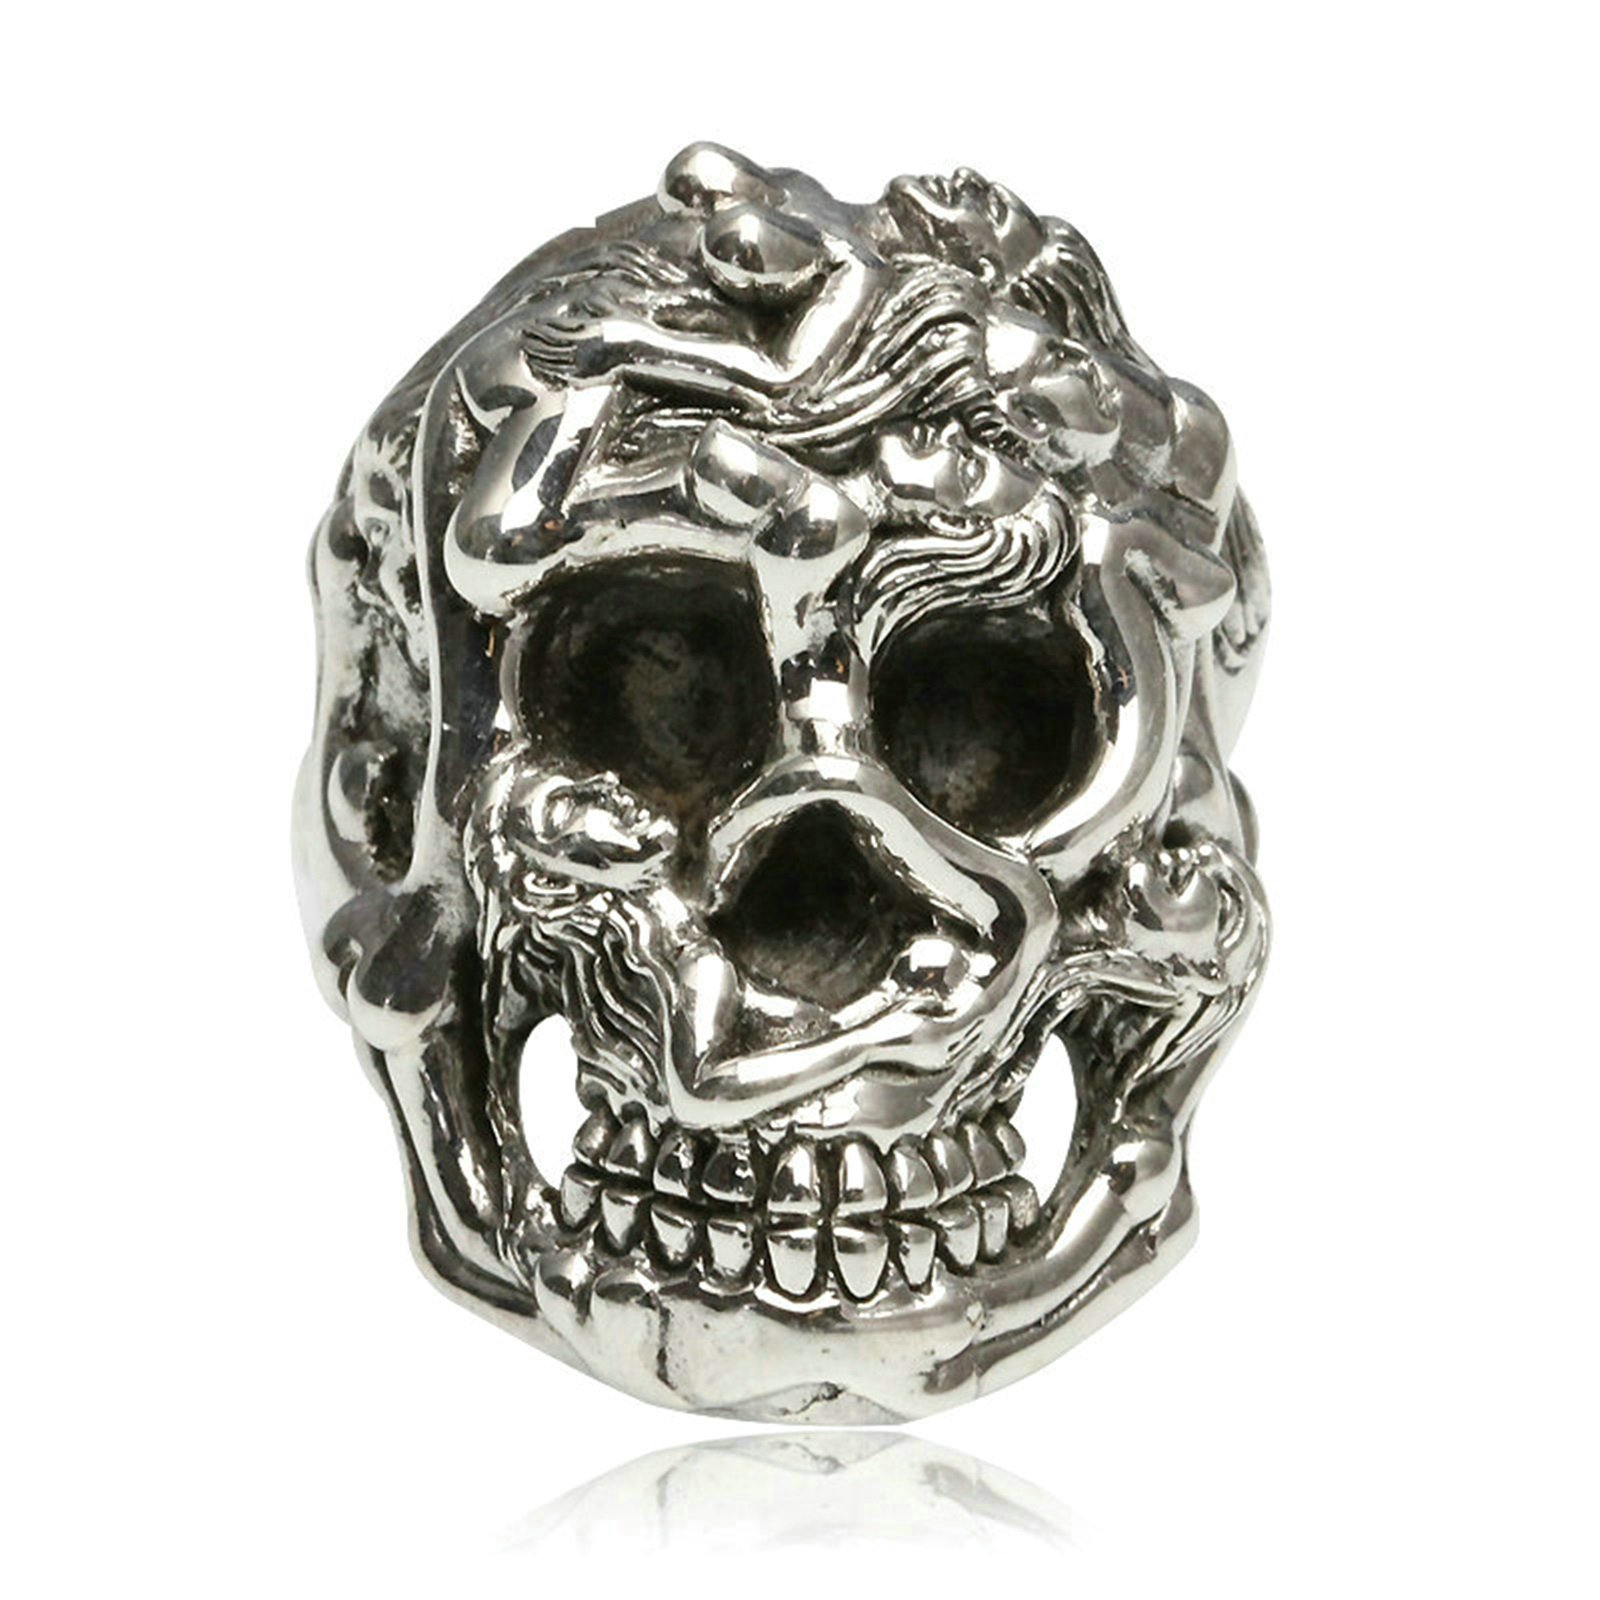 Adisaer Biker Rings Silver Ring for Men Six Naked Girl Skull Head Ring Size 11 Vintage Punk Jewelry by Adisaer